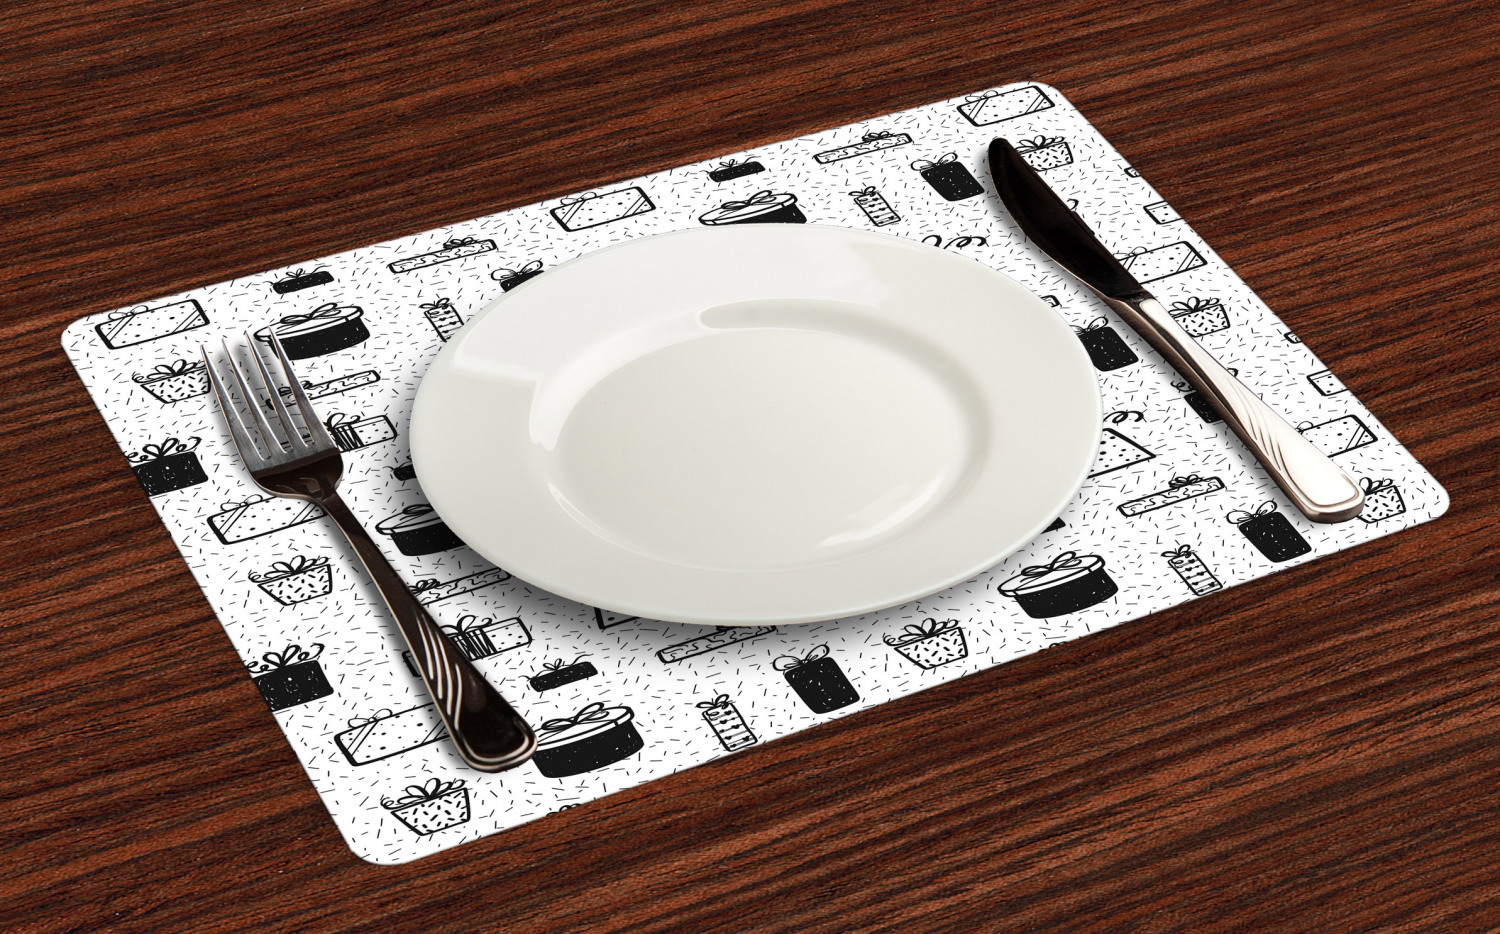 Ambesonne-Fabric-Place-Mats-Set-of-4-Placemats-for-Dining-Room-and-Kitchen-Table thumbnail 105